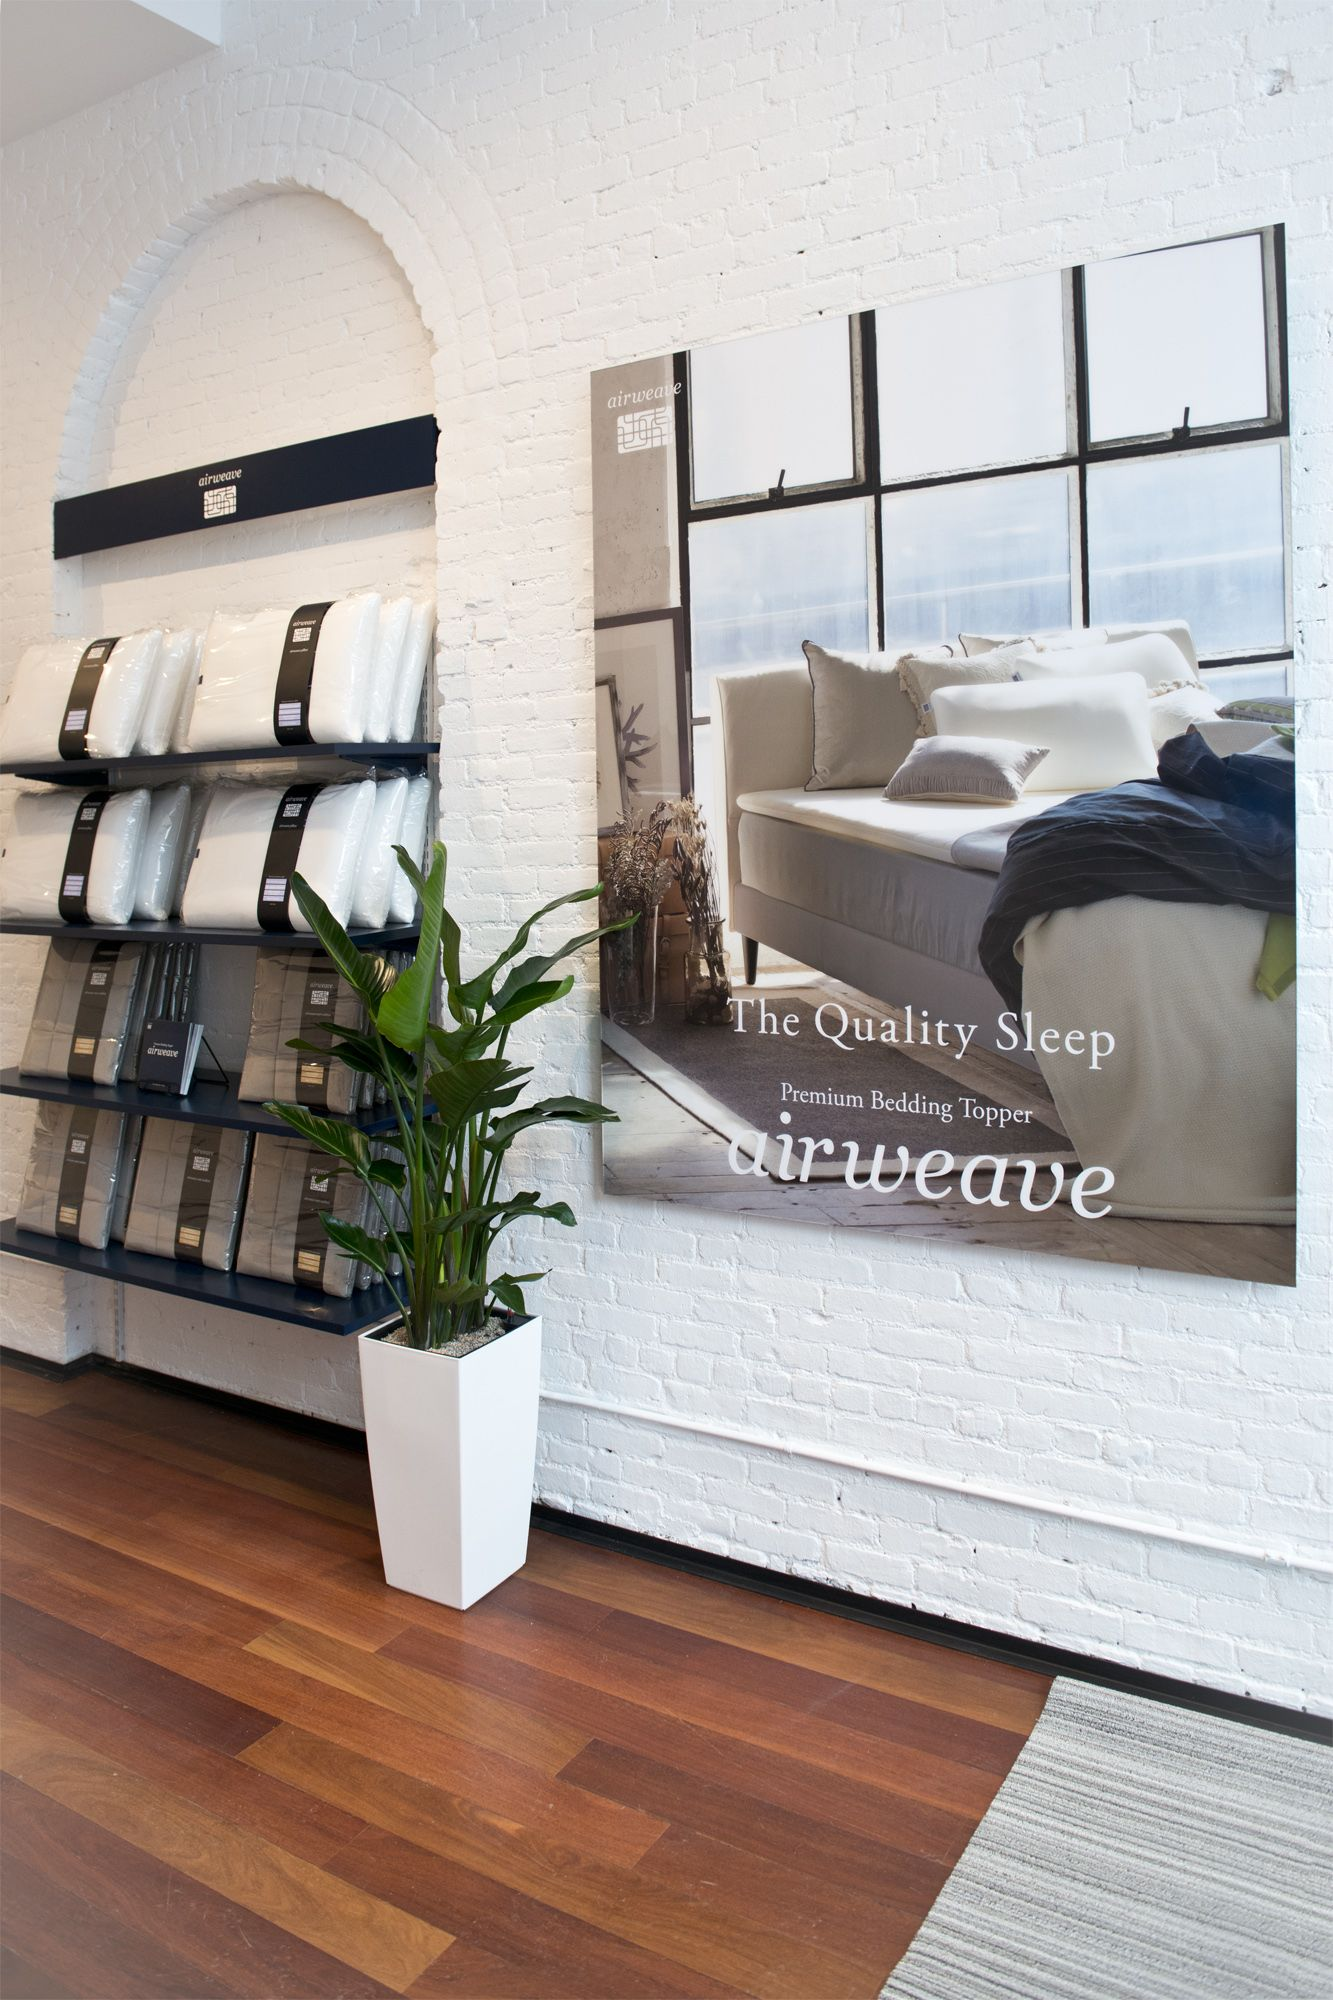 Airweave Mattress Topper Store In New York City 498 Broome St New York Ny 10013 646 964 5020 Www Airweave Com Premium Bedding Mattress Topper Mattress